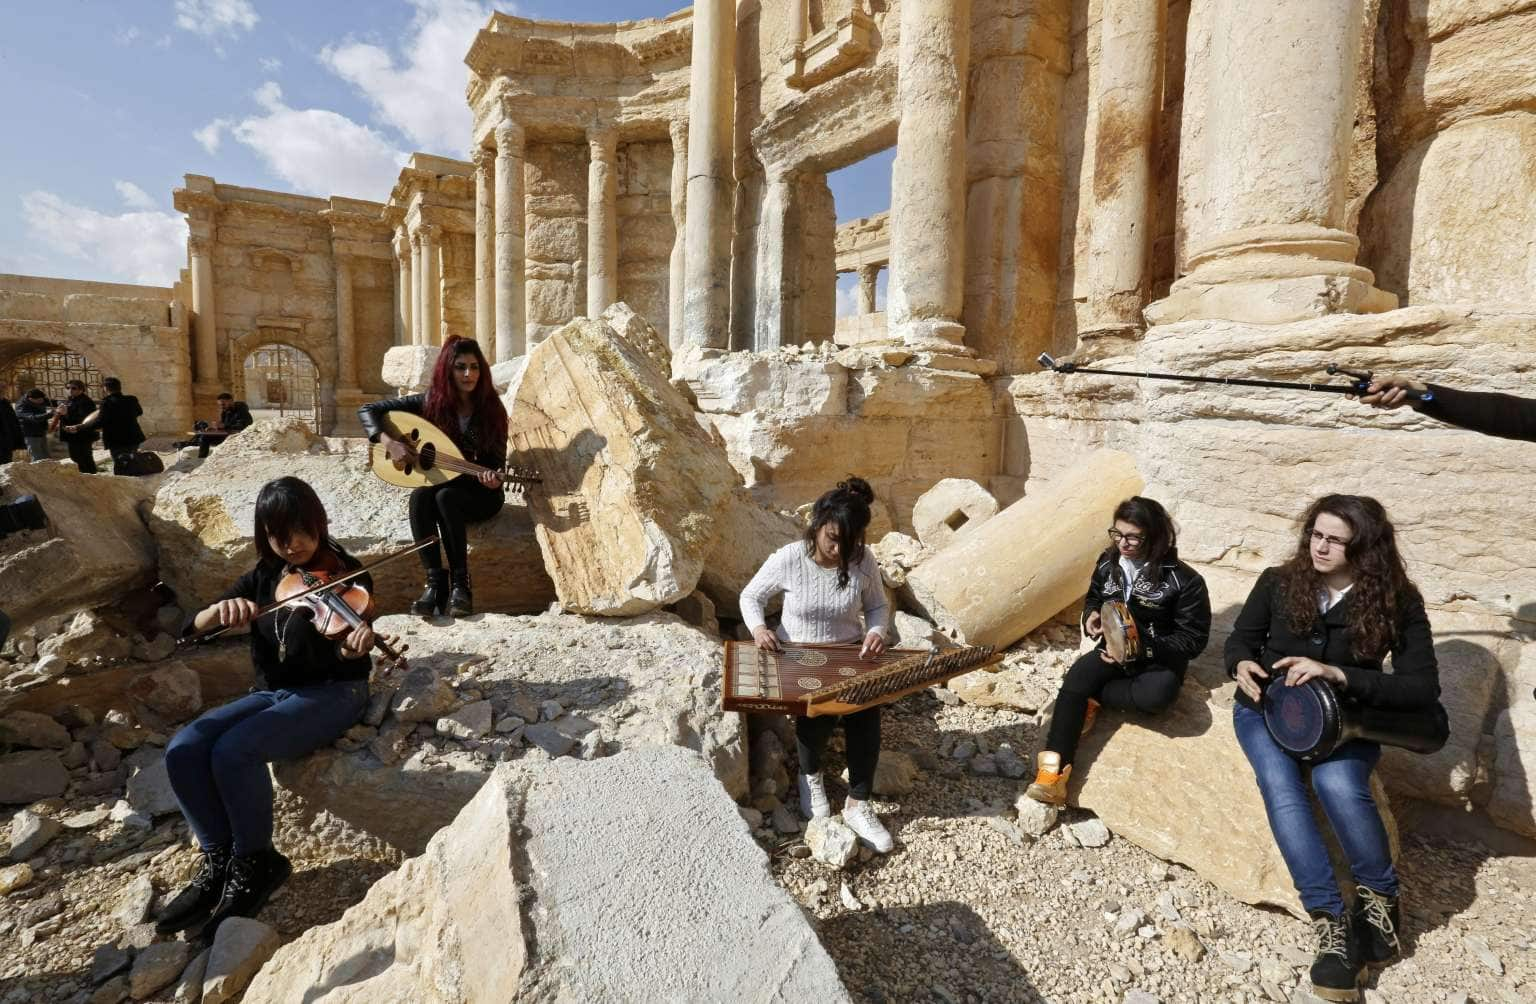 Daesh Driven Out of Syria's Ancient Palmyra City